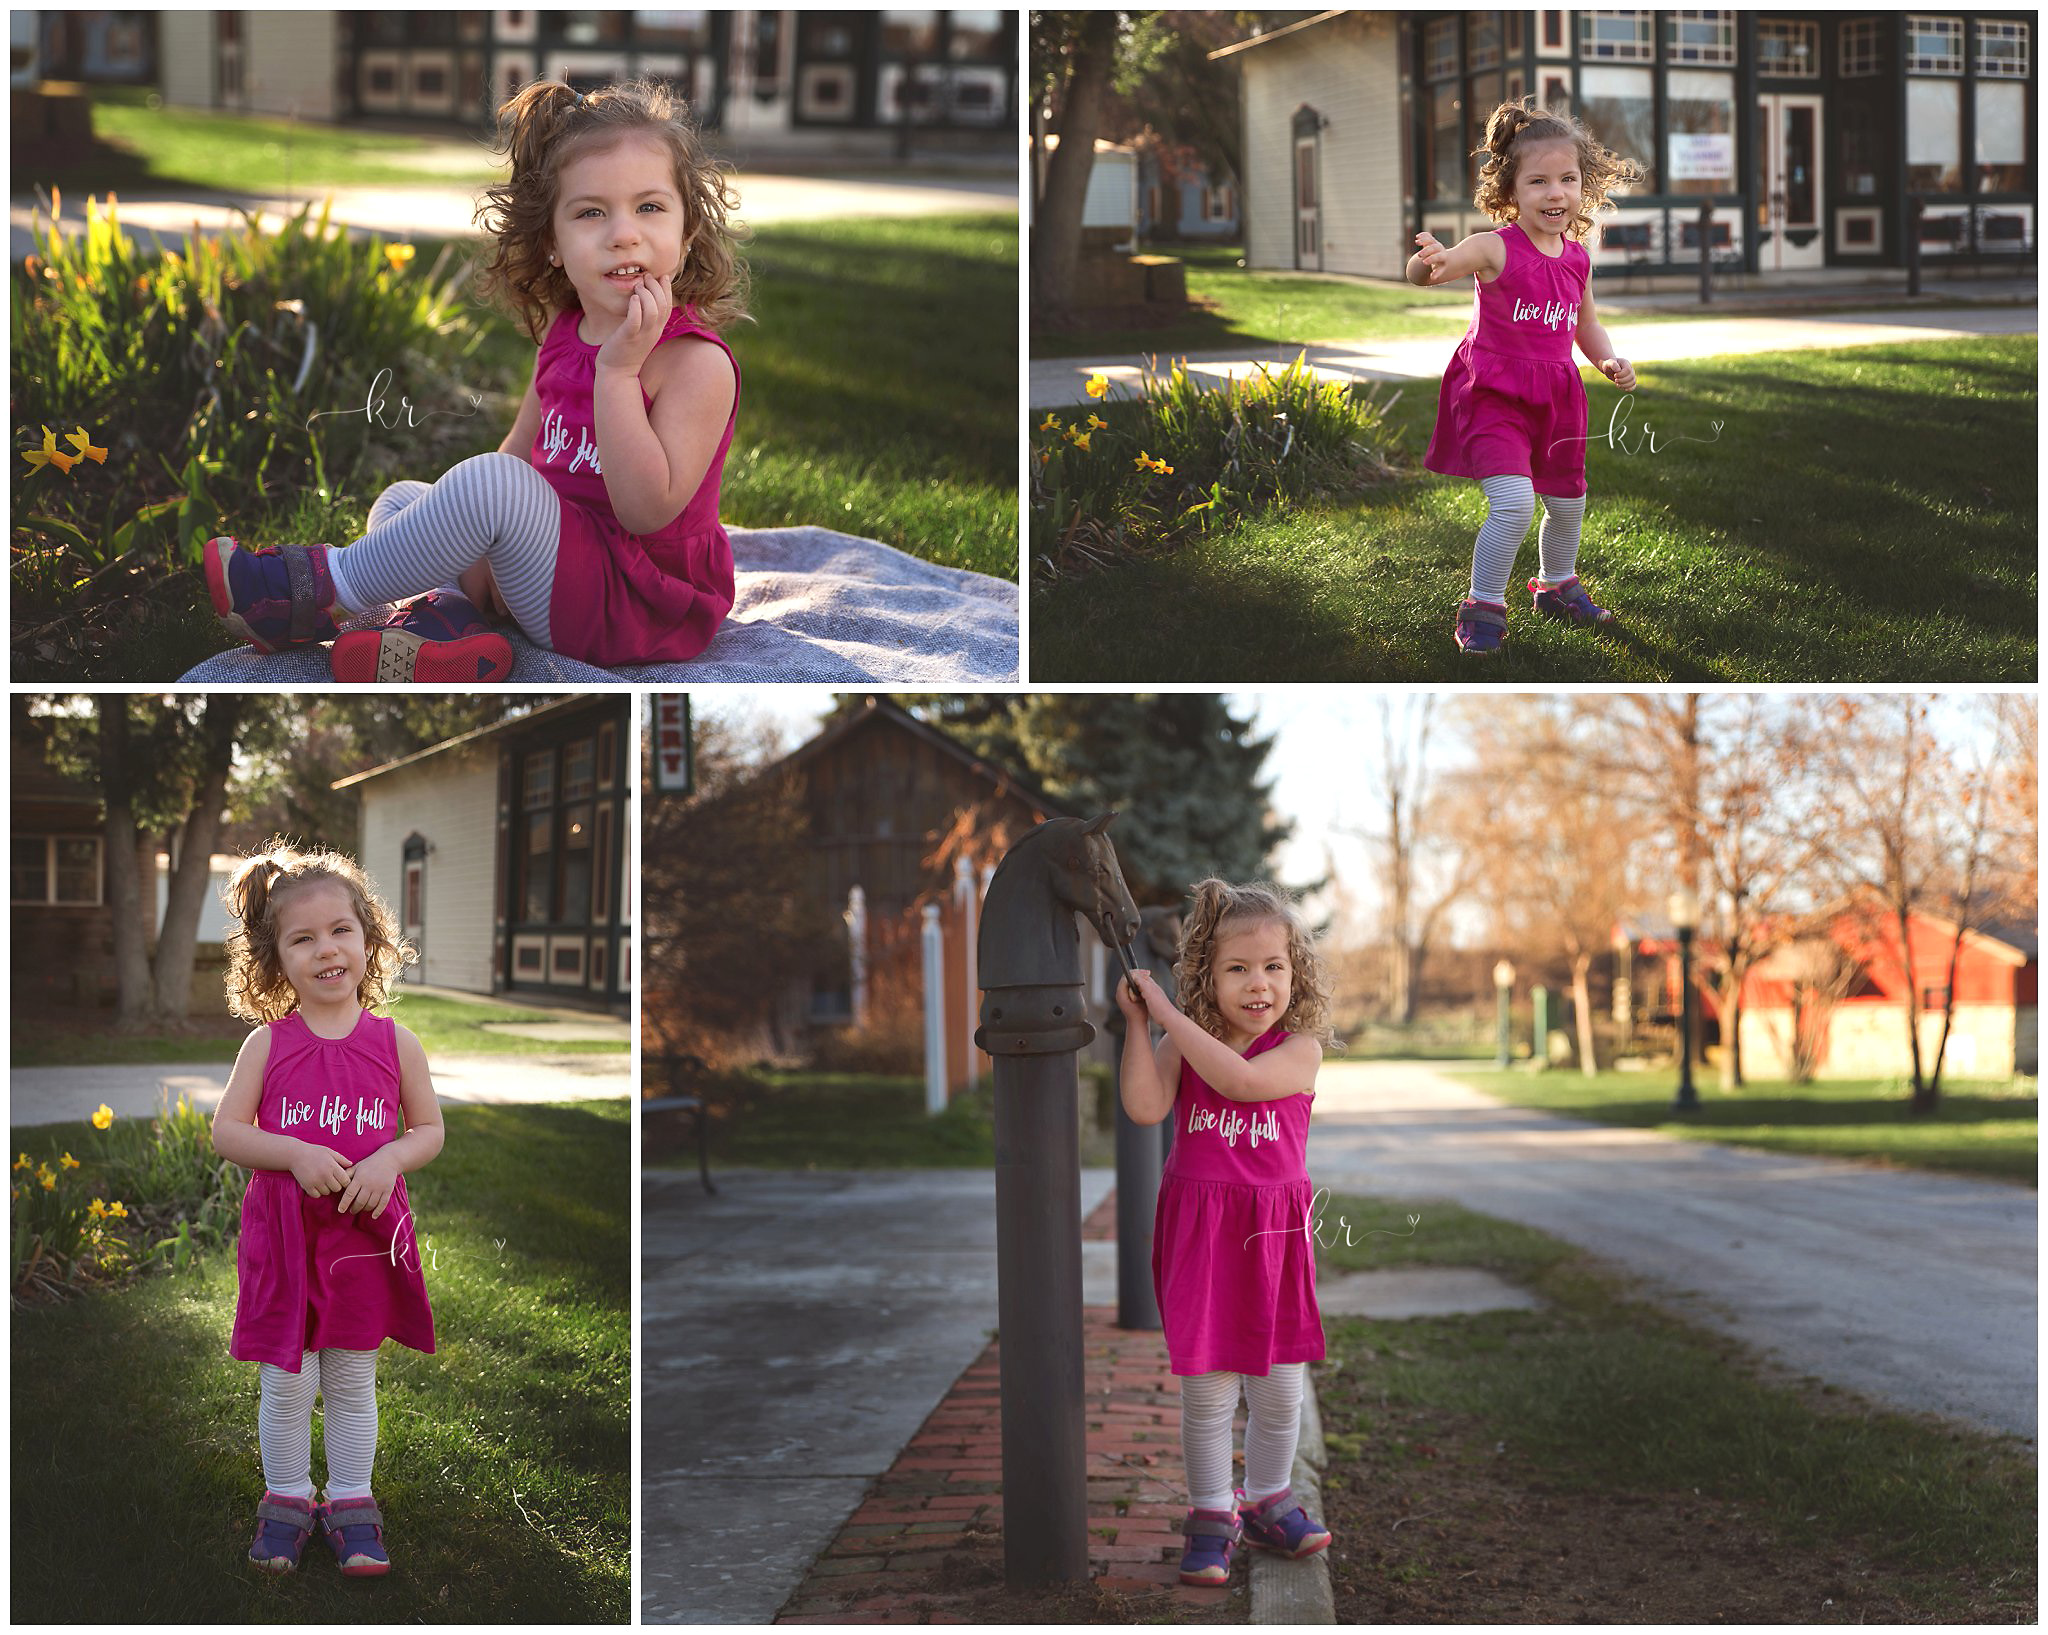 Kathy-Rogers-Photography_Beautifully-Different_Children-Photographer-in-Amherst_Little-girl-_Prader-Willi-syndrome_